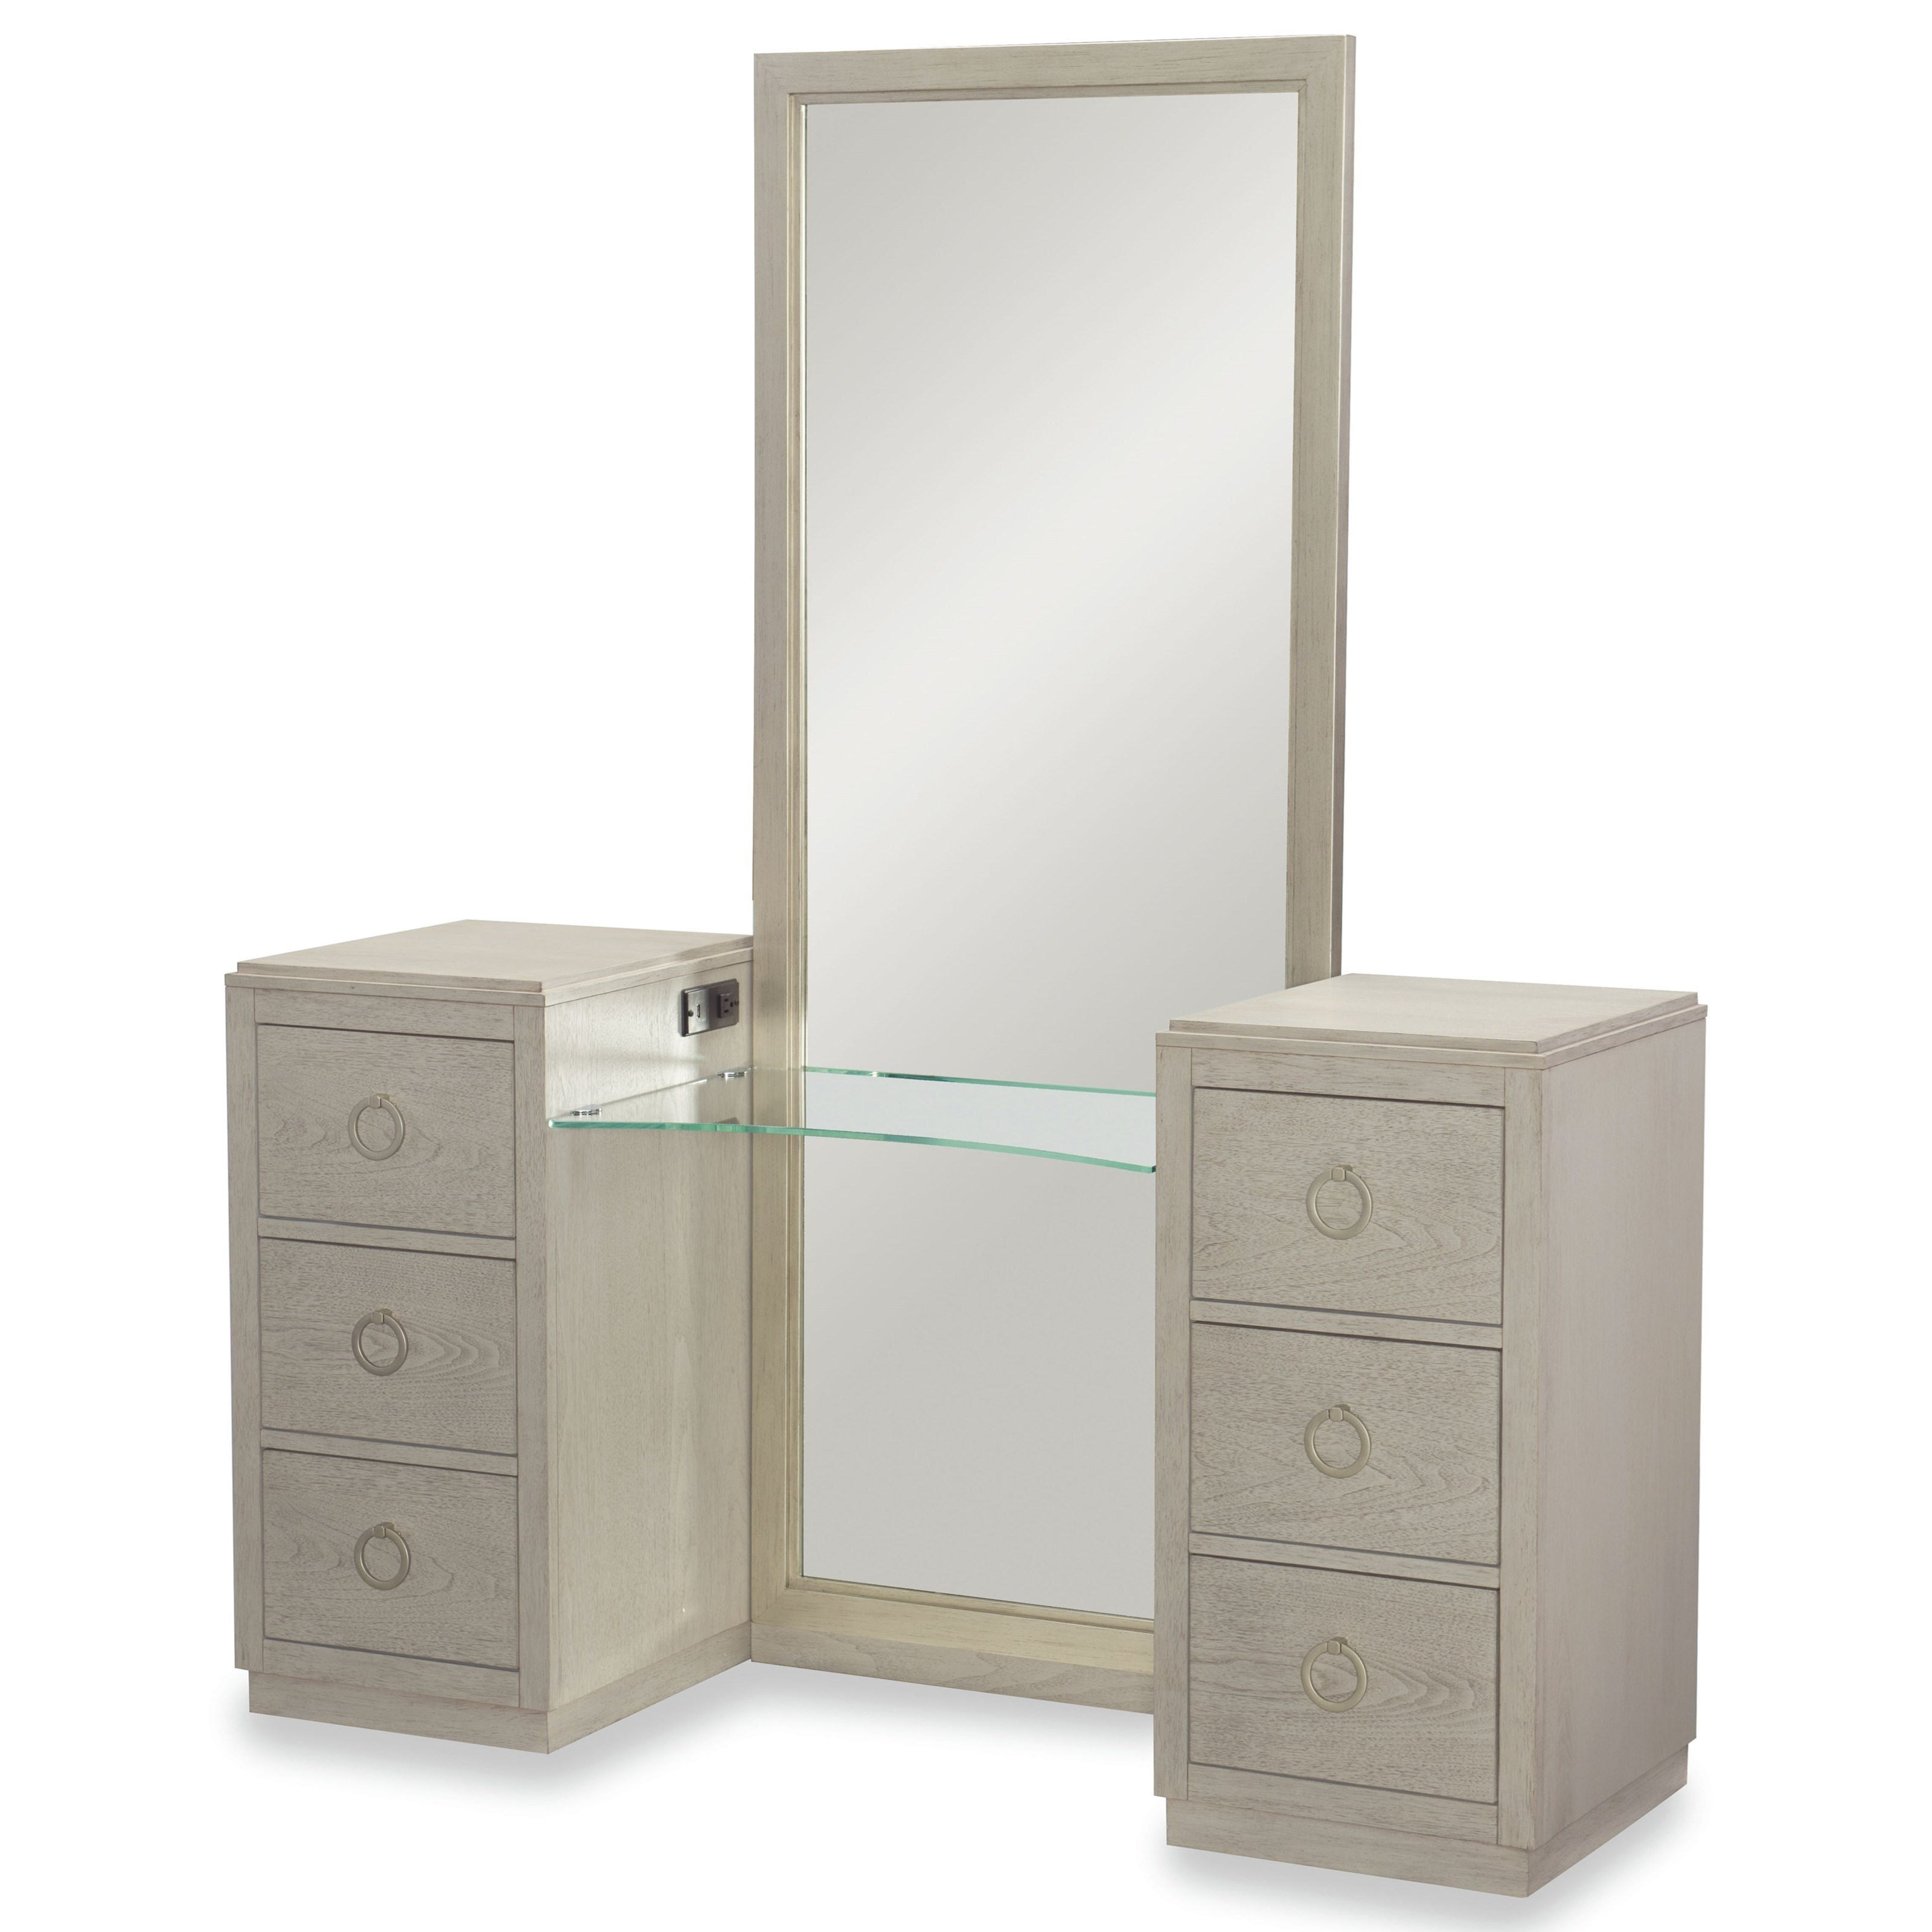 Rachael Ray Home by Legacy Classic Cinema Vanity with Mirror - Item Number: 7200-7400K